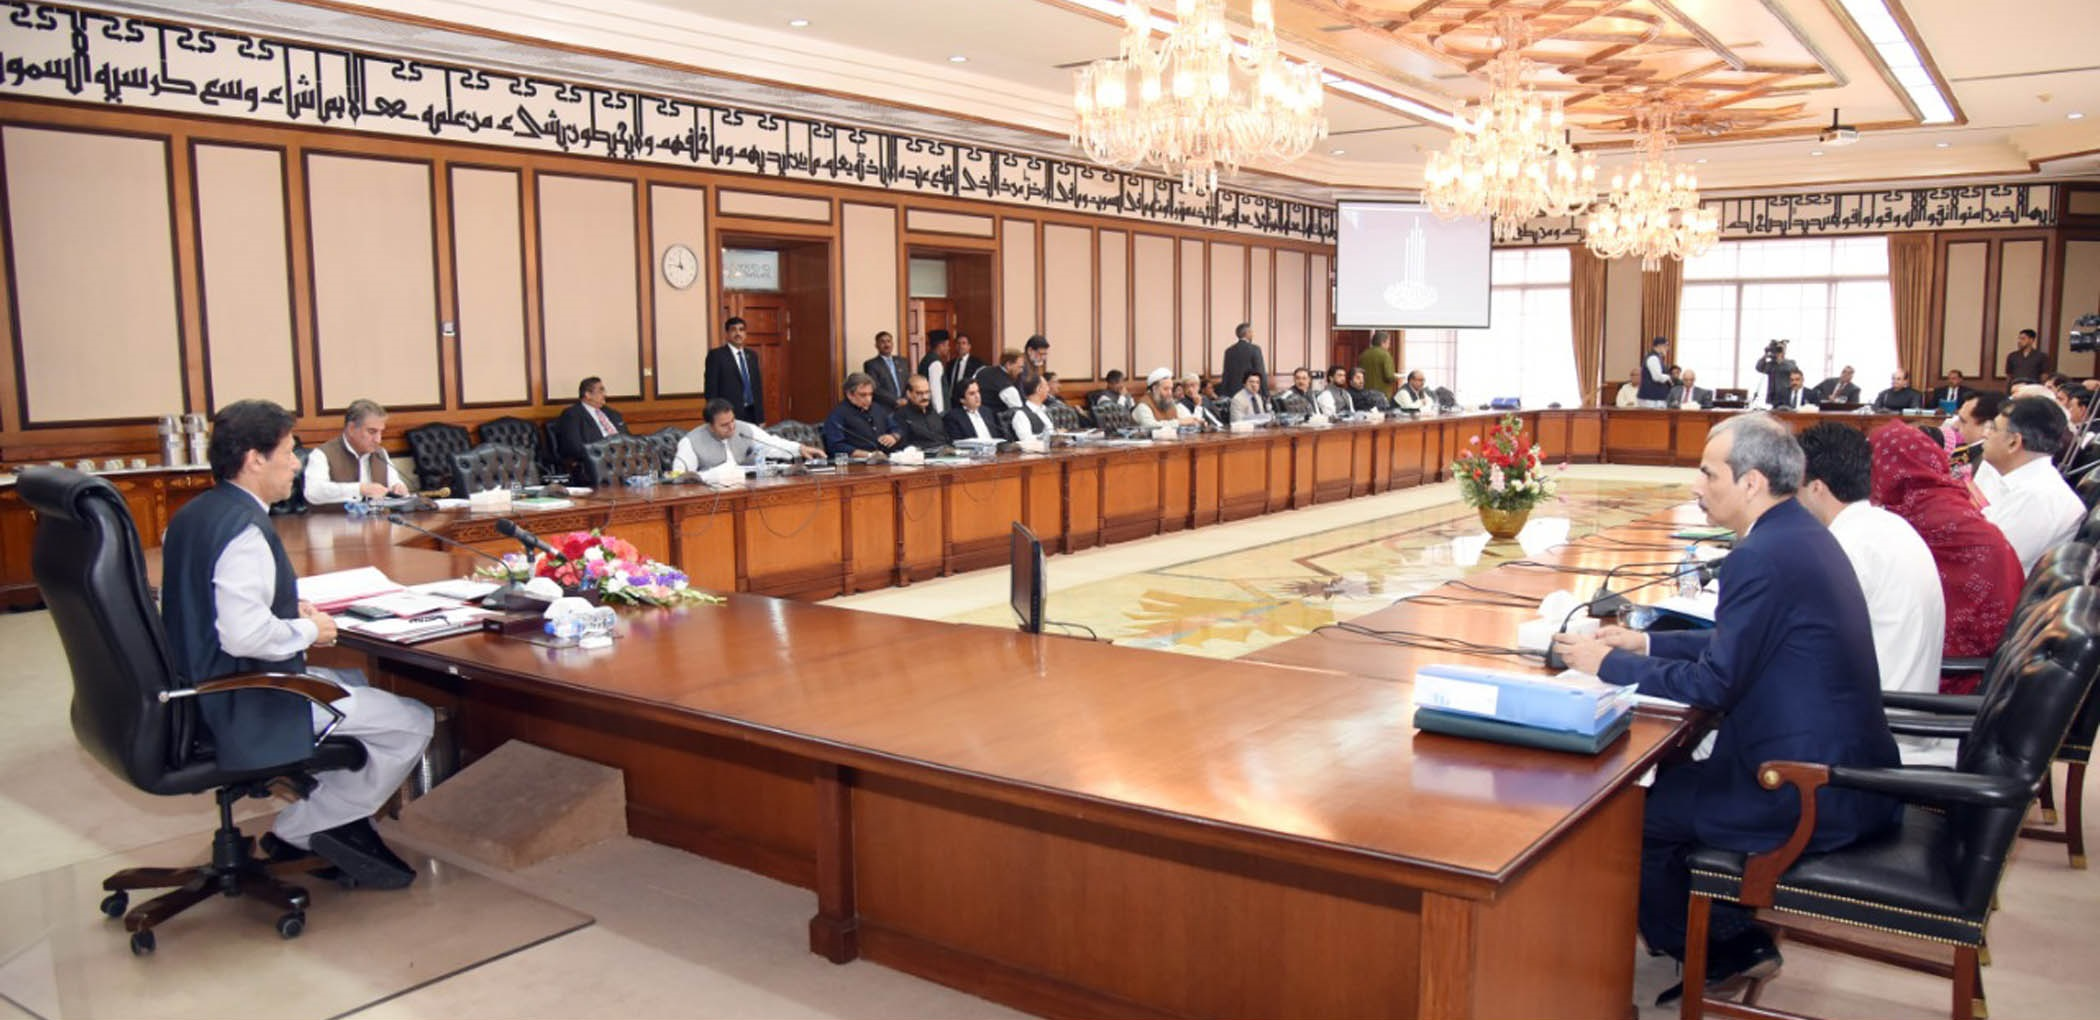 Prime Minister Imran Khan chairs meeting of the Federal Cabinet at PM Office Islamabad on 16th April, 2019. PHOTO: REUTERS